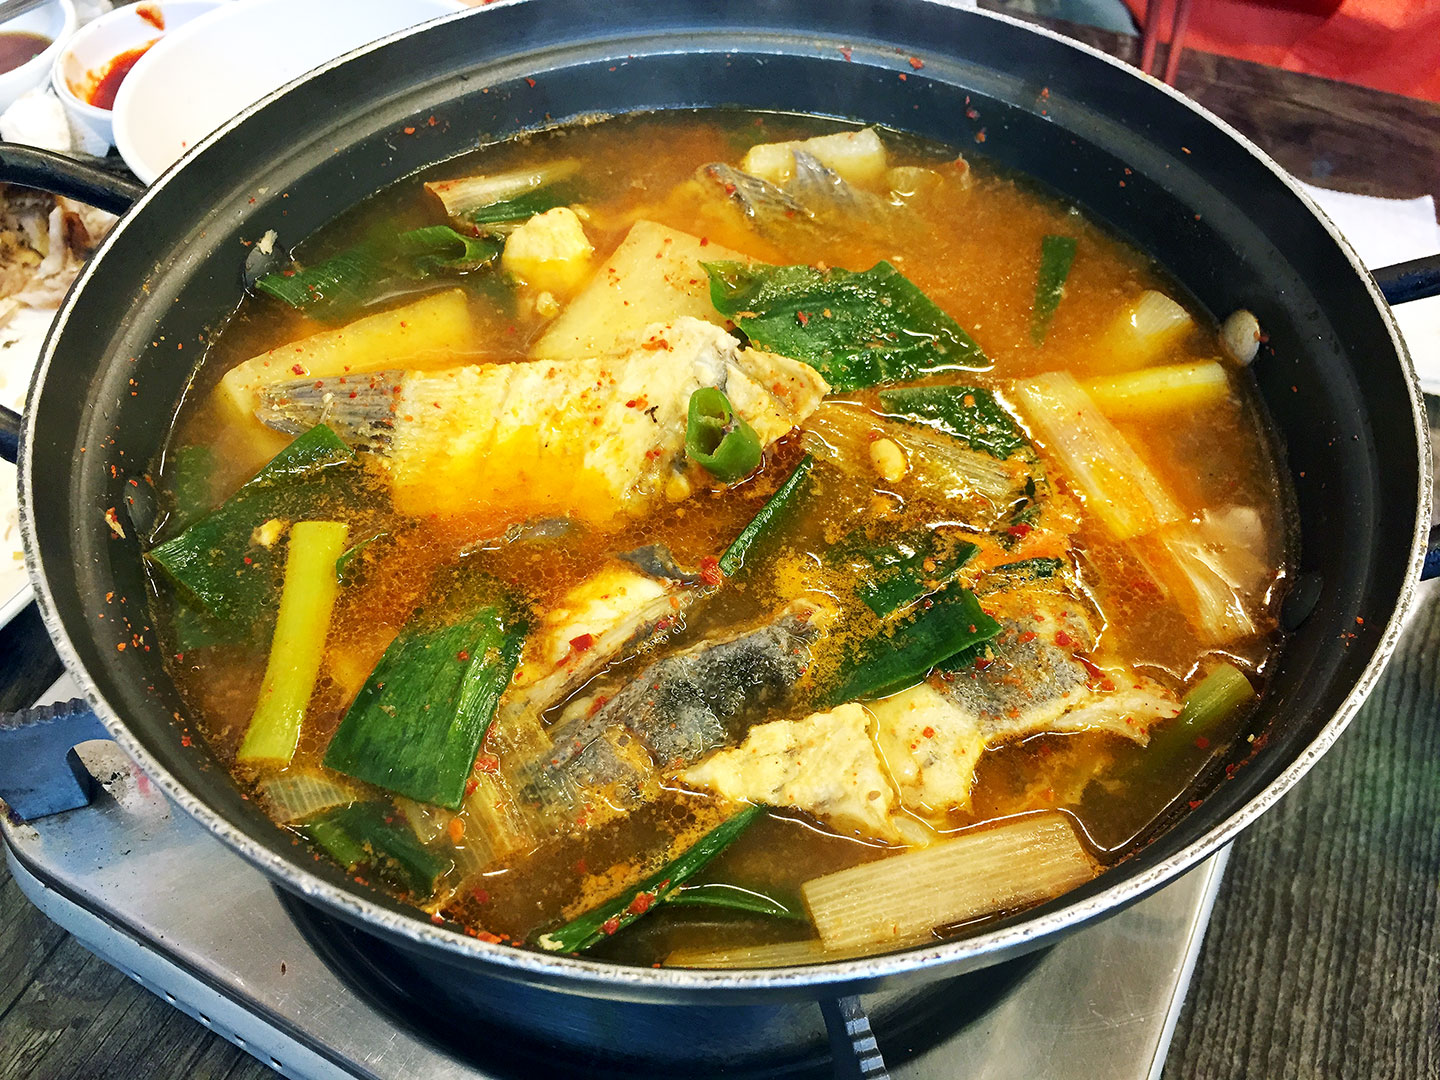 When you order fish from the Jagalchi Fish Market, you can ask them to cook it as a spicy fish soup called maeuntang (매운탕).